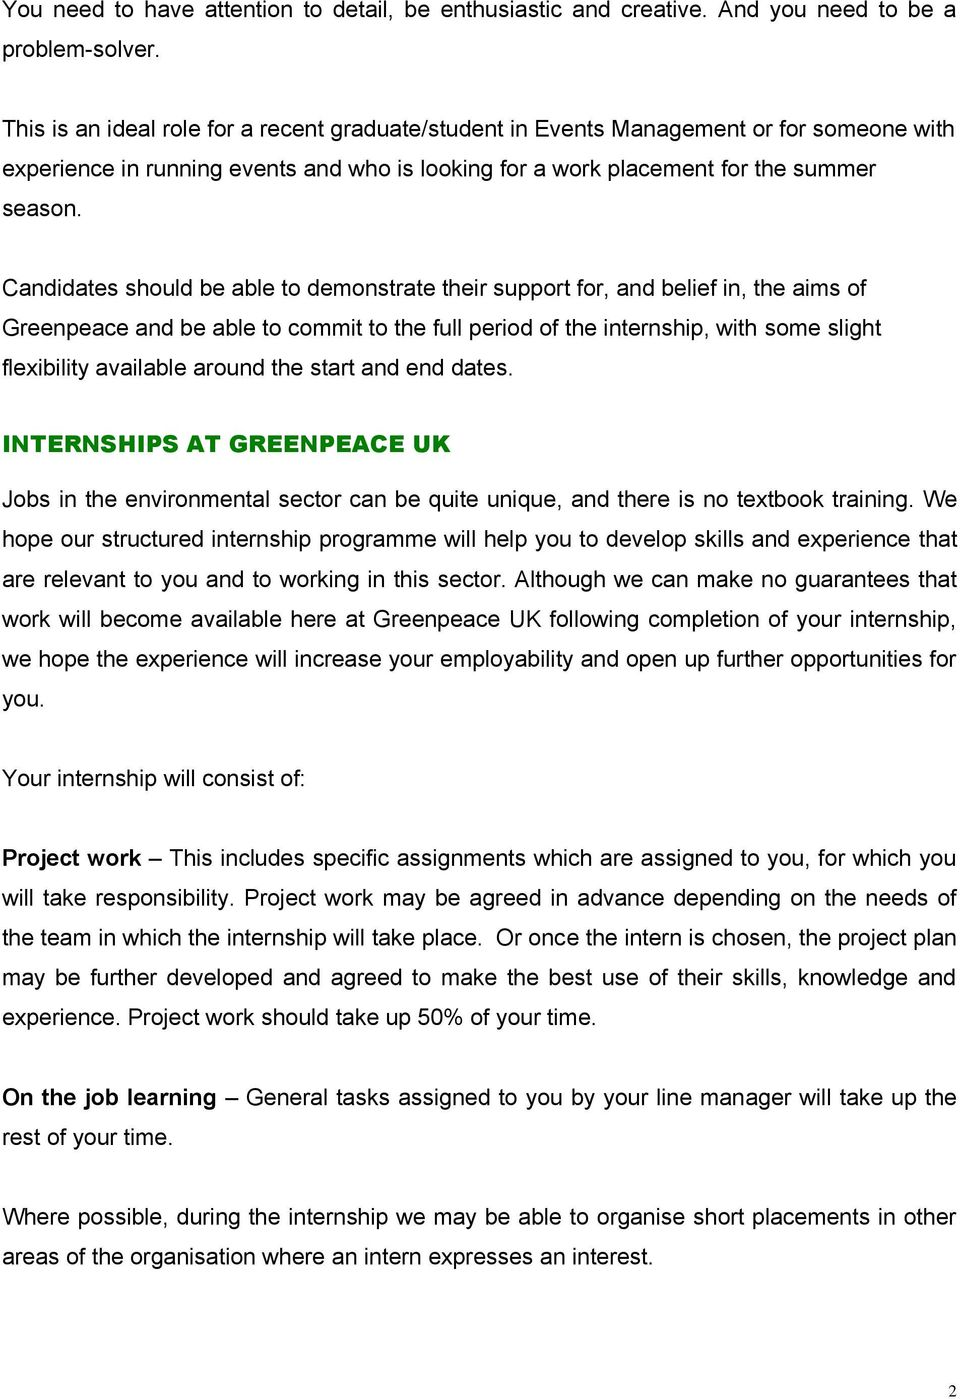 Candidates should be able to demonstrate their support for, and belief in, the aims of Greenpeace and be able to commit to the full period of the internship, with some slight flexibility available